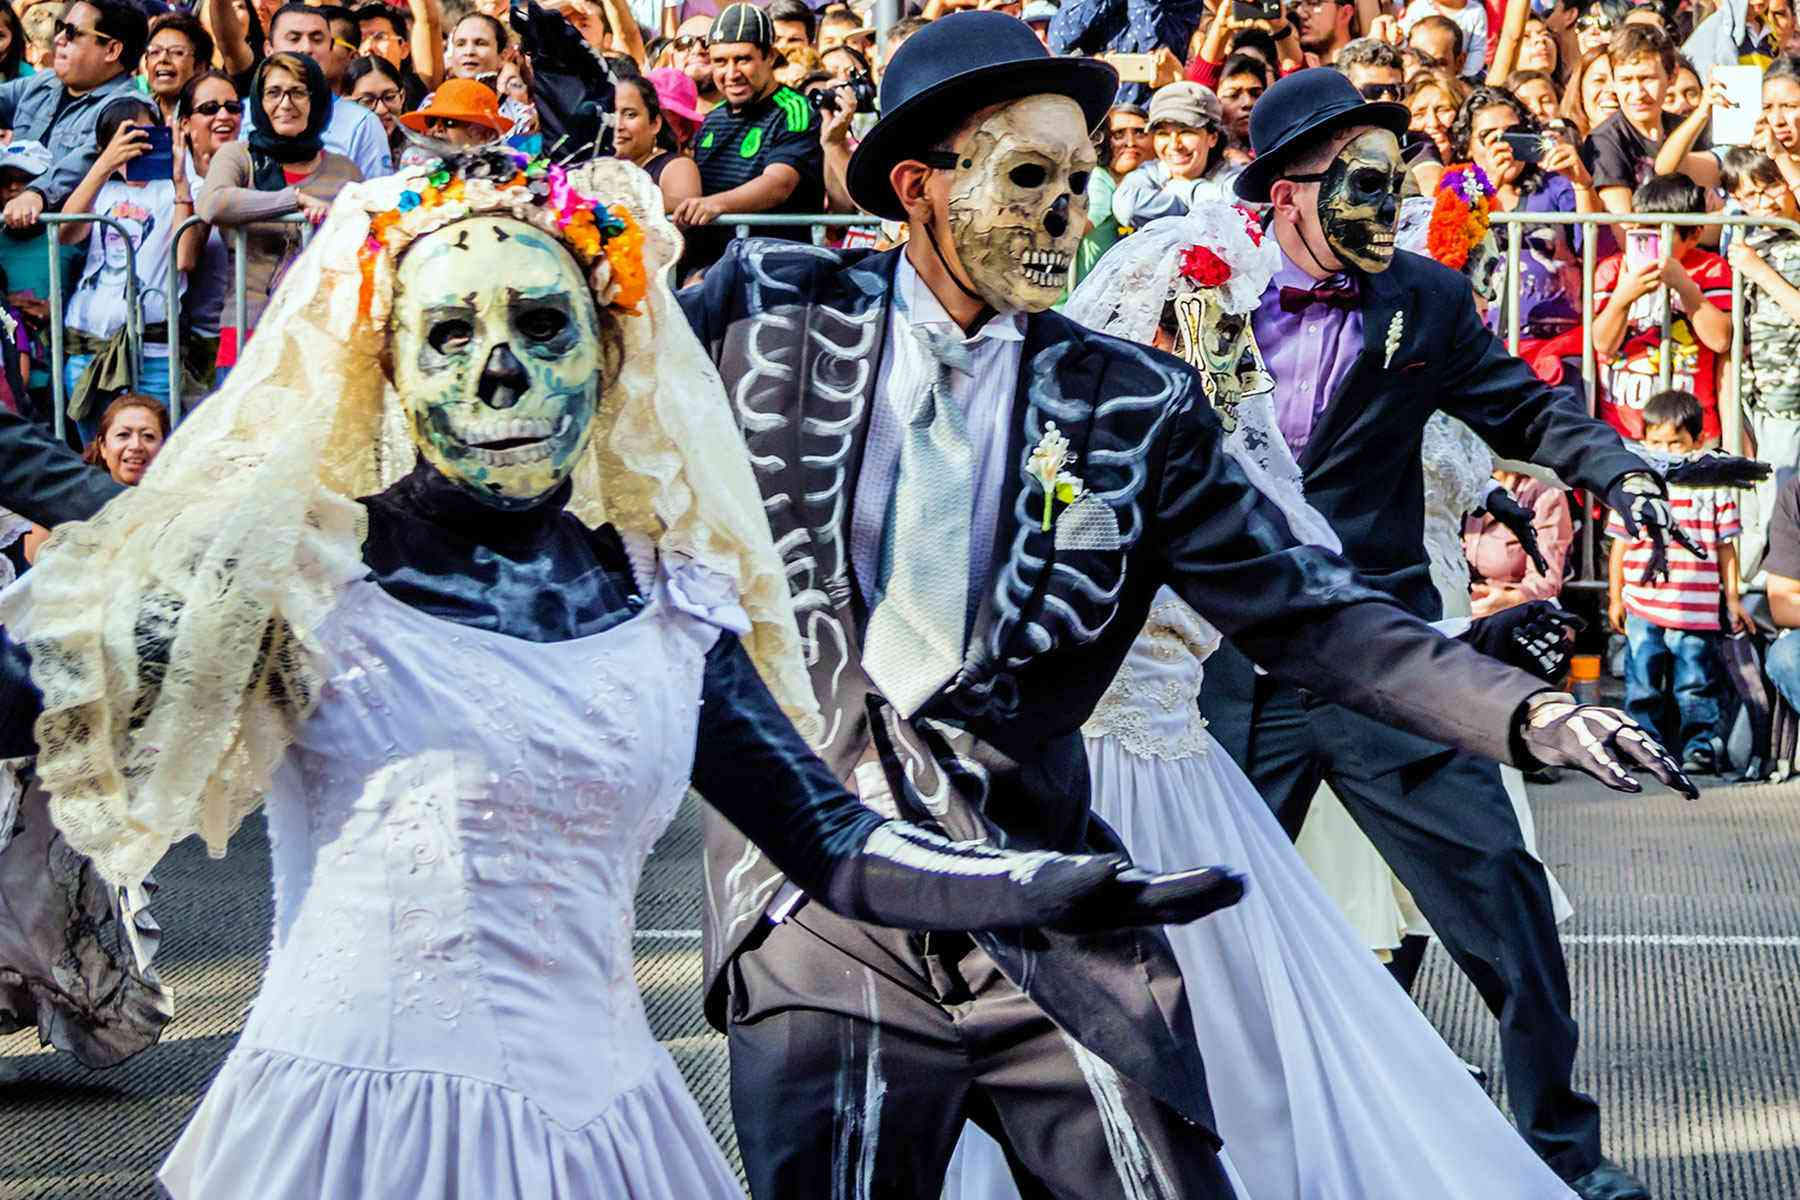 d5d387c4ce4 15 Ways Halloween Is Celebrated Around the World – Fodors Travel Guide